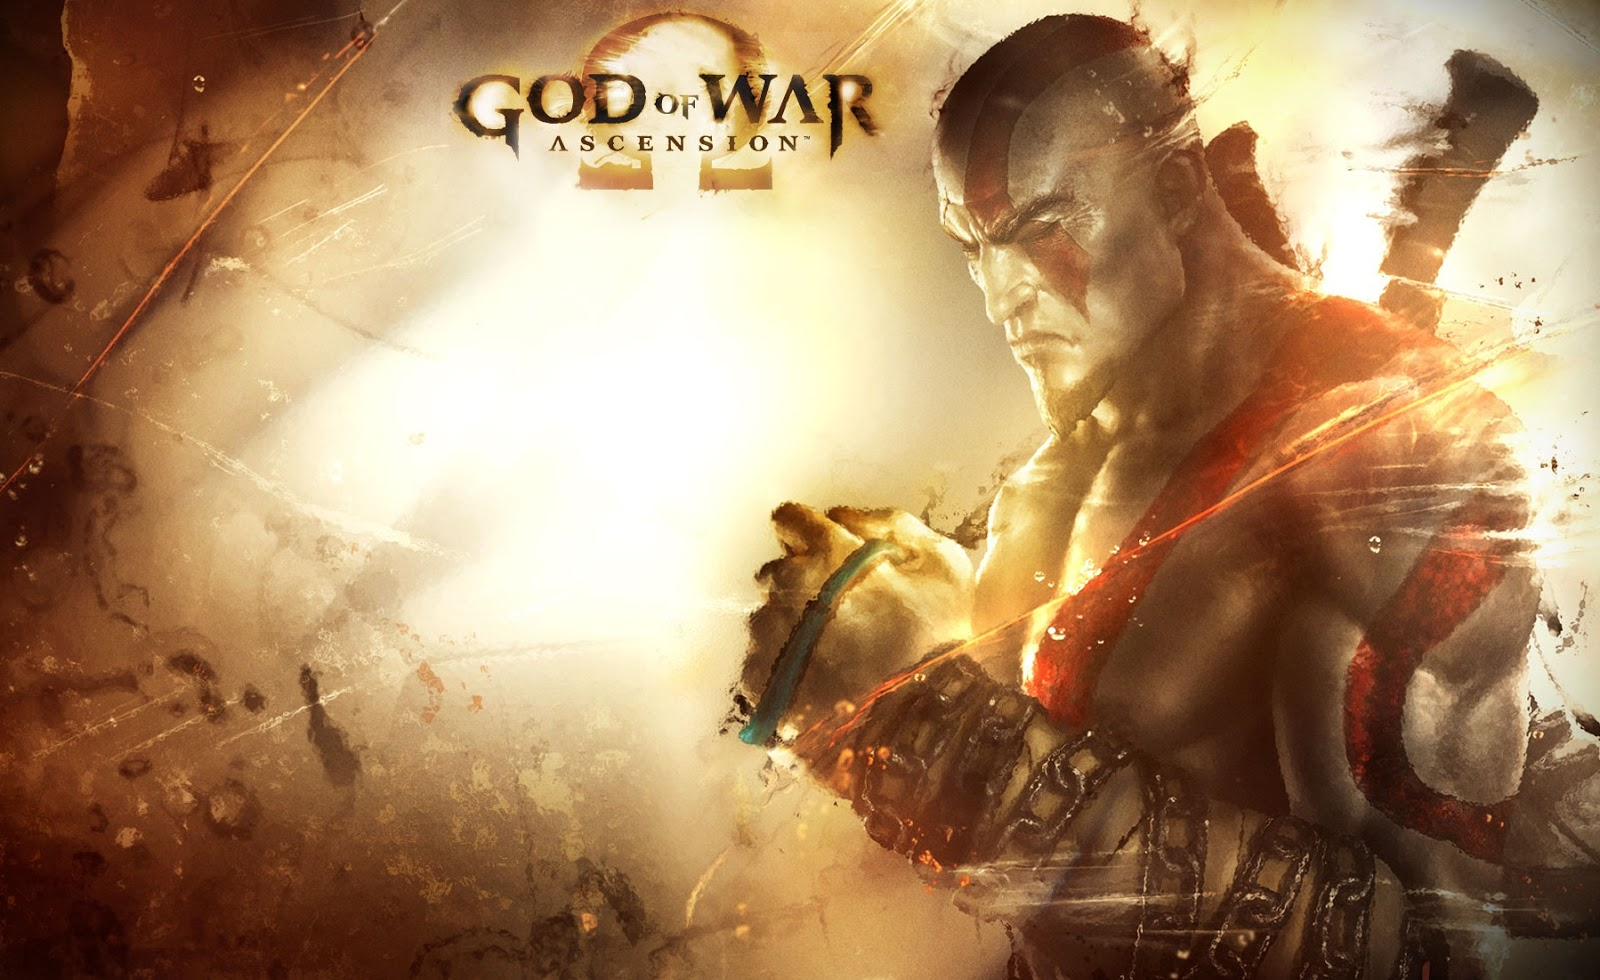 download here download god of war 4 ascension full version free highly